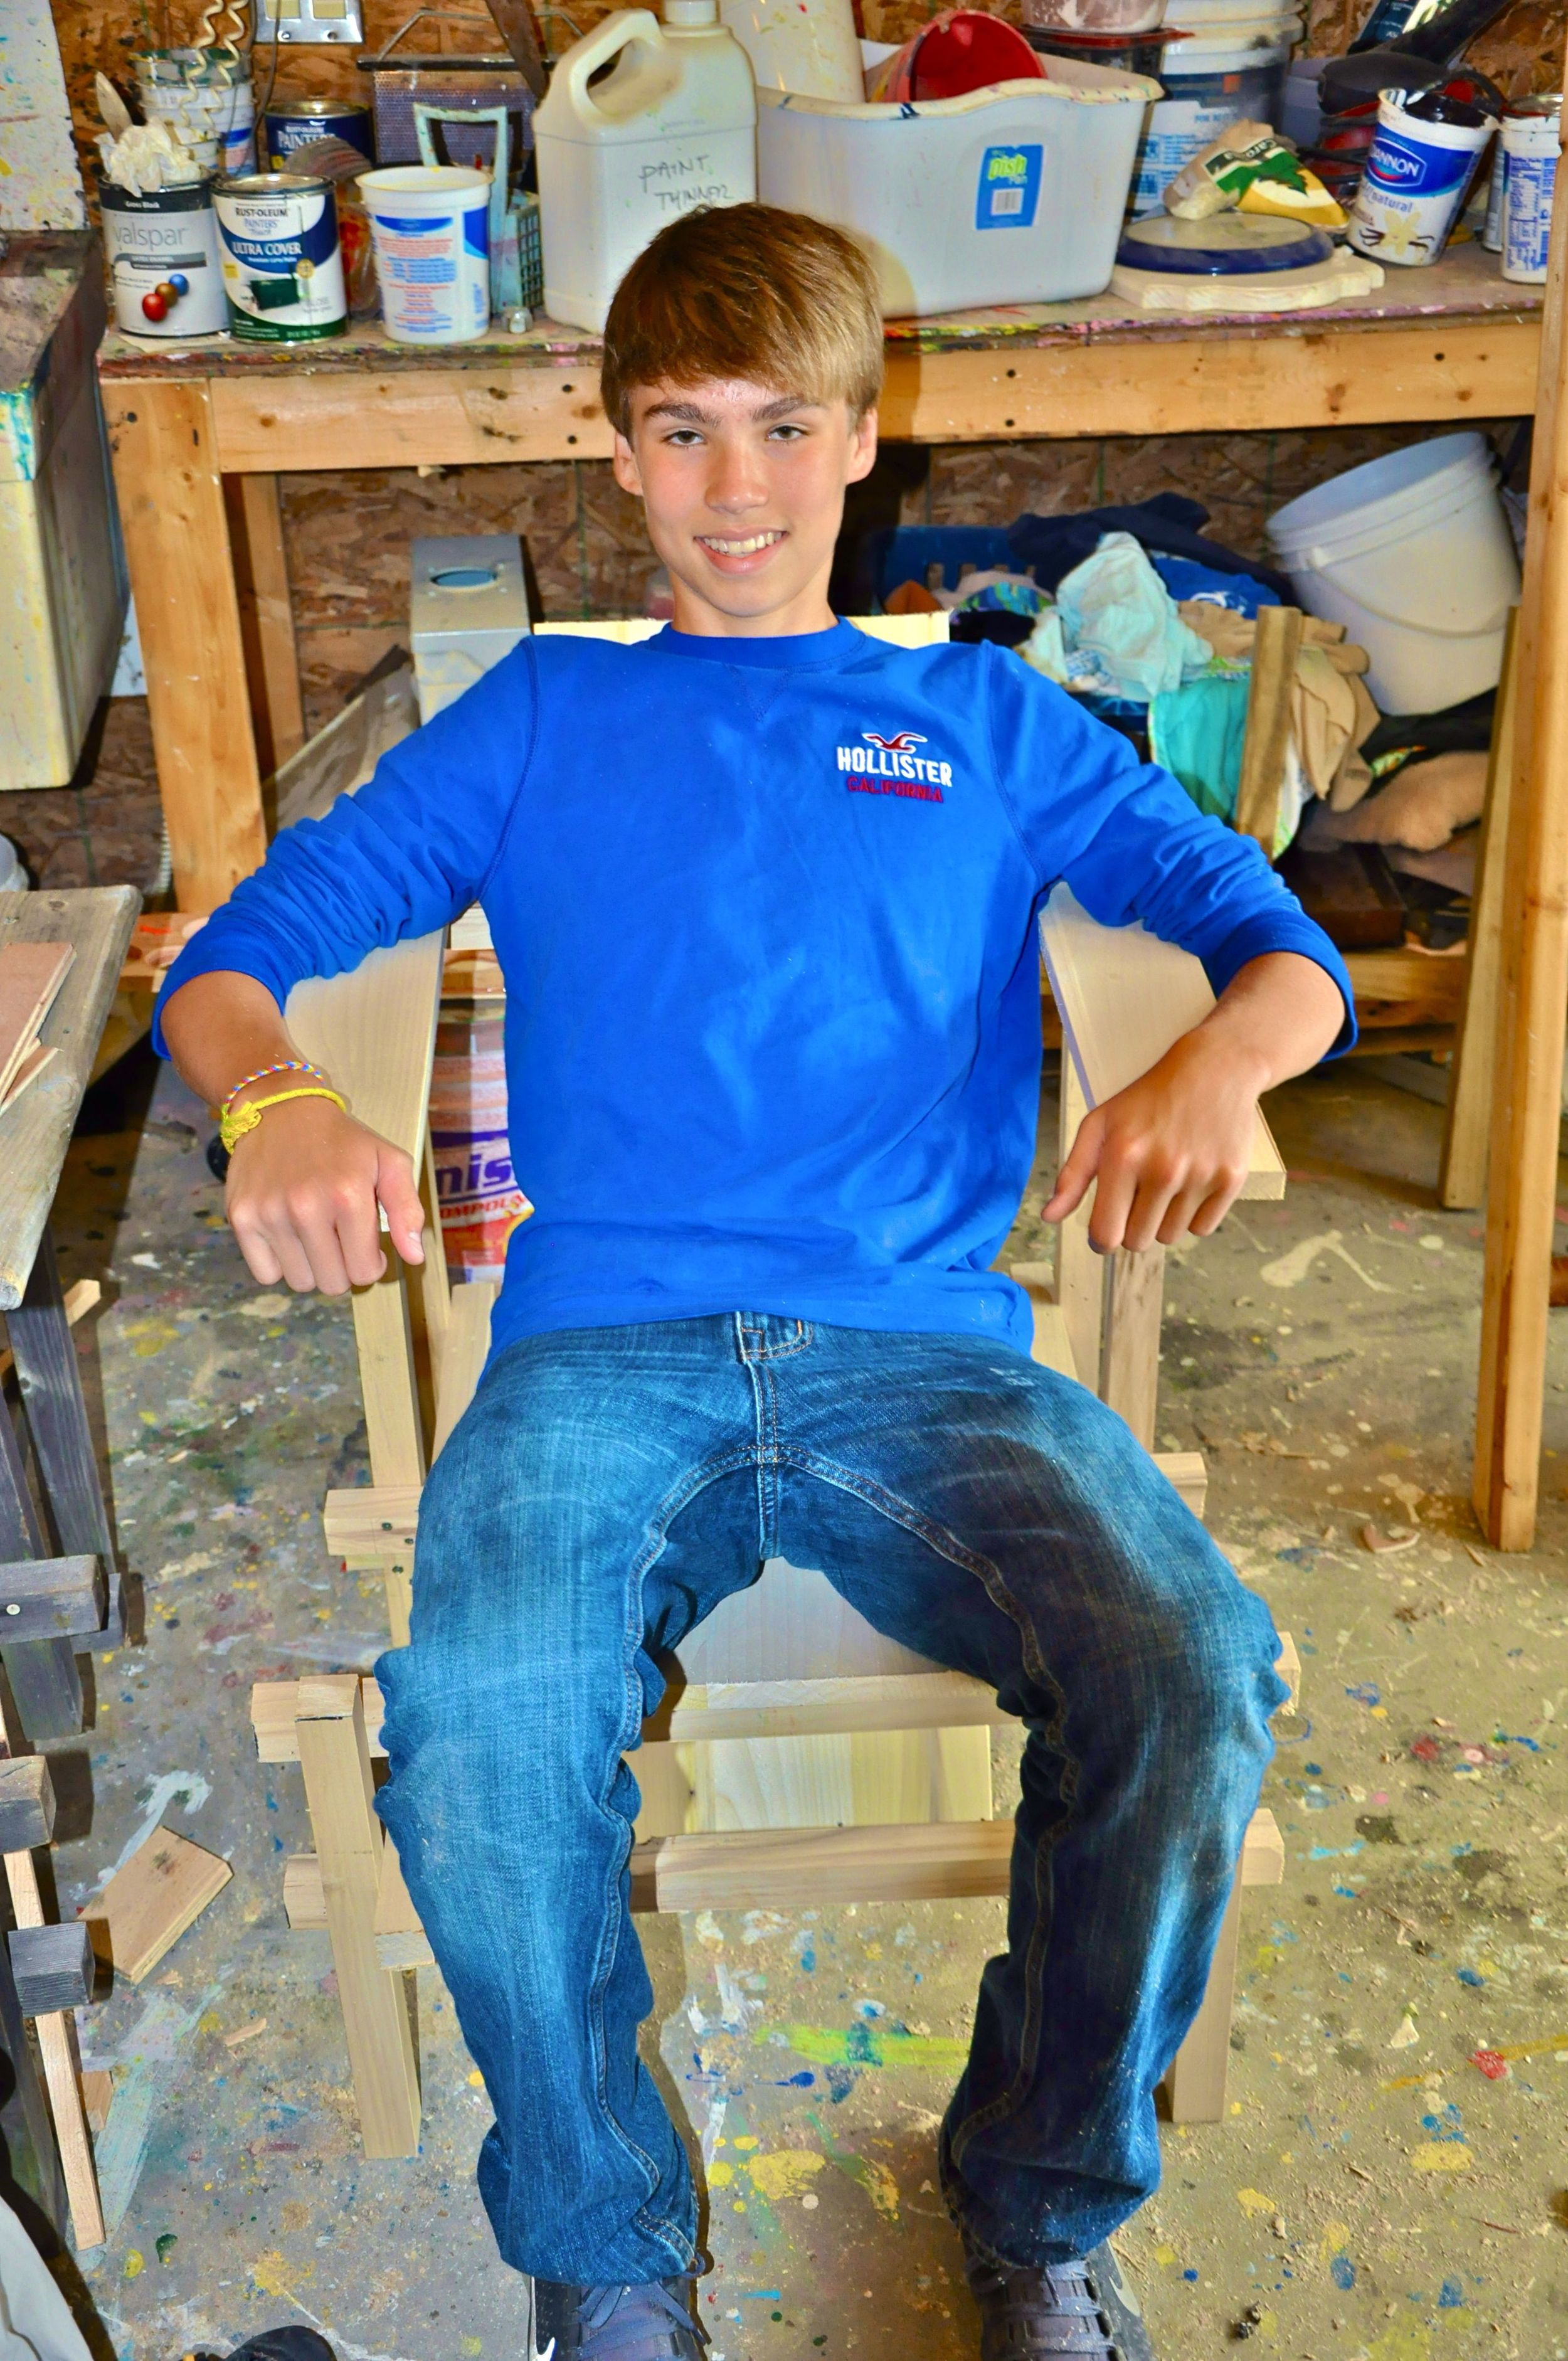 bruce-sitting-in-his-chair-that-he-made-during-woodshop.jpg